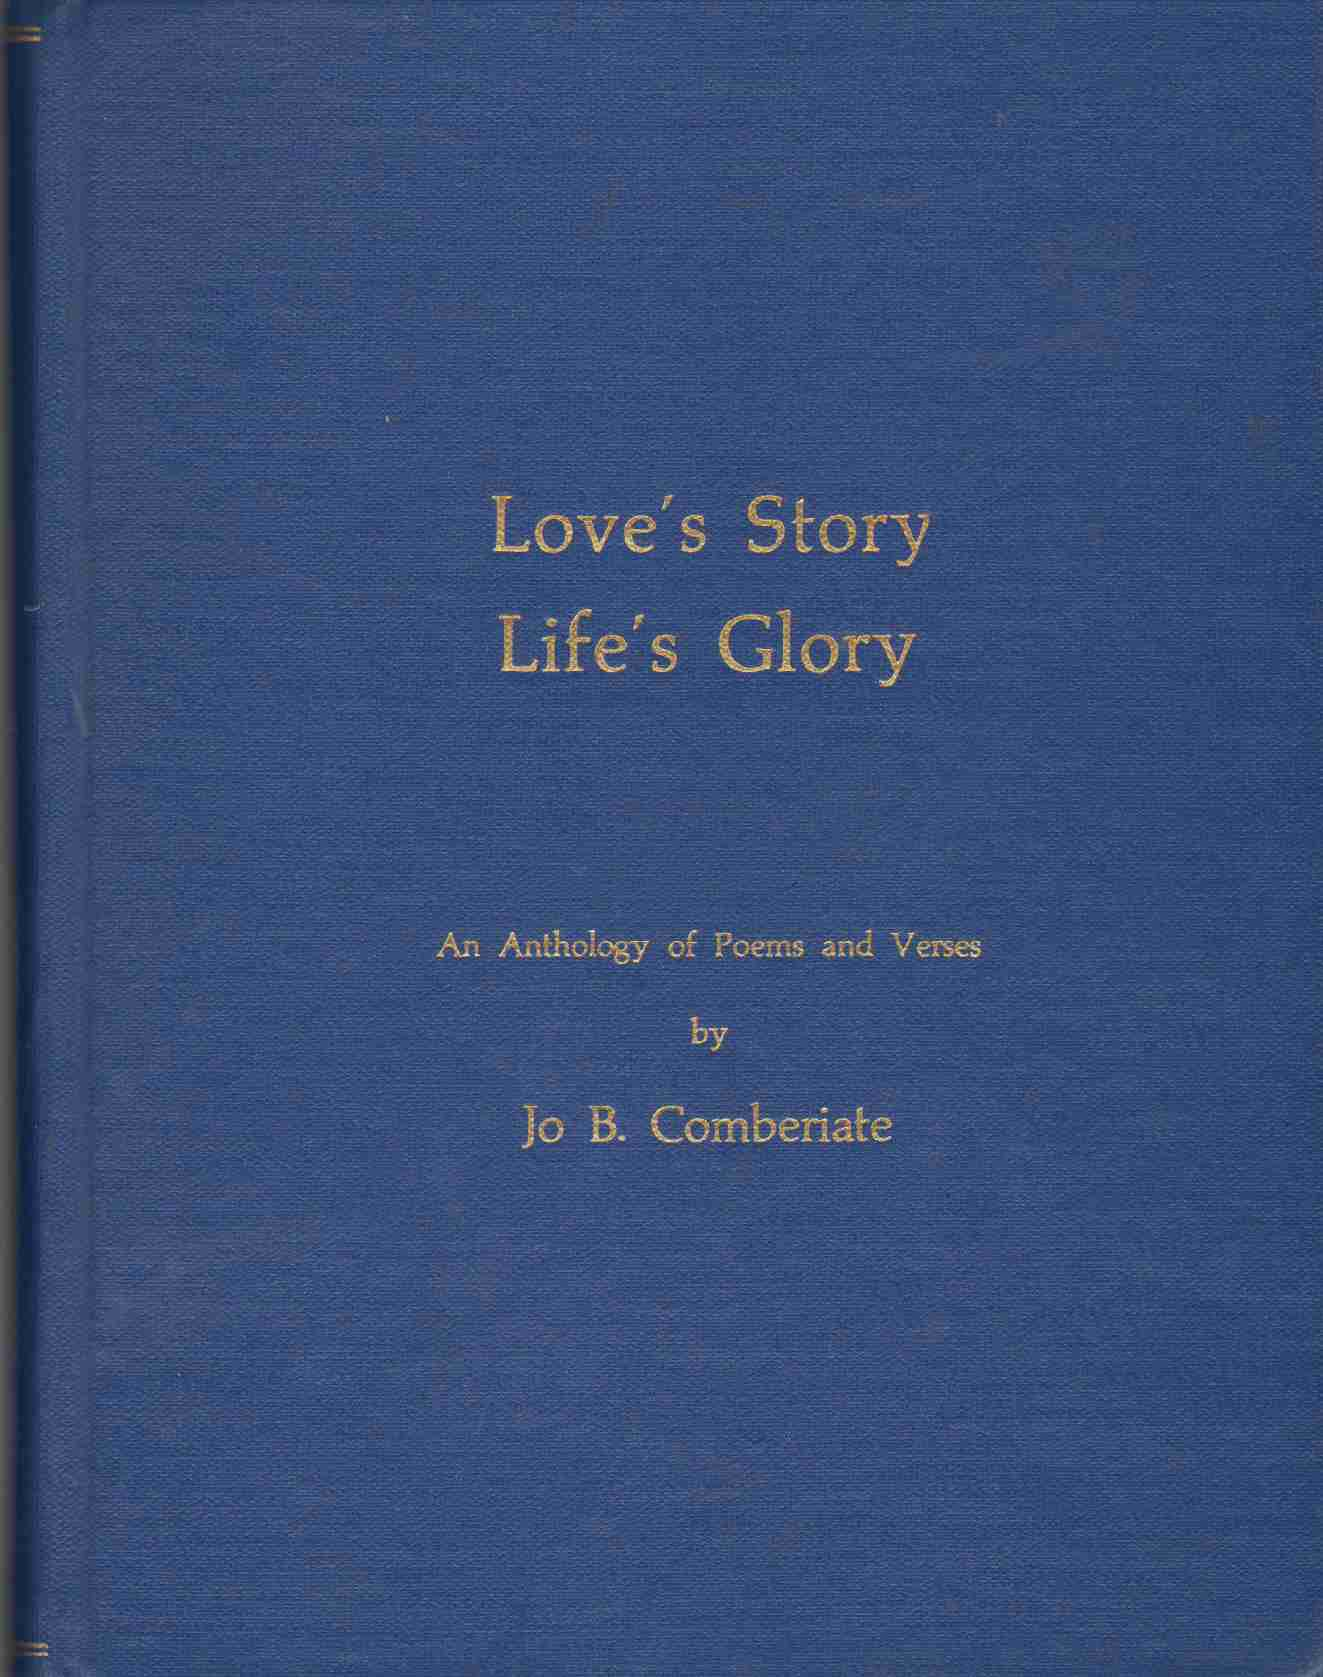 LOVE'S STORY LIFE'S GLORY An Anthology of Poems and Verses, Comberiate, Josephine Bertolini